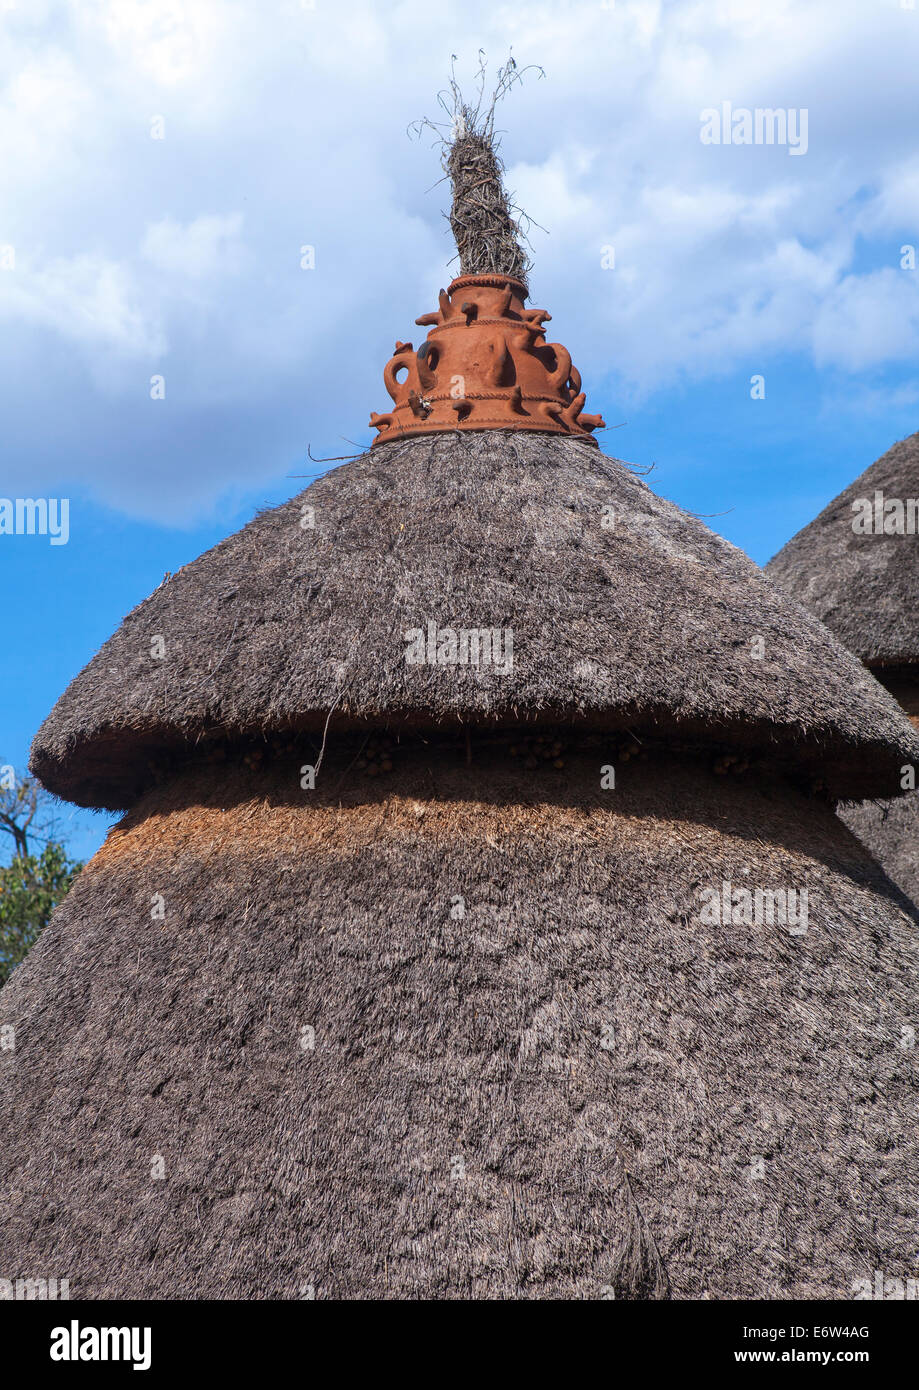 Konso Tribe Traditional Houses With Pots On The Top, Konso, Omo Valley, Ethiopia Stock Photo